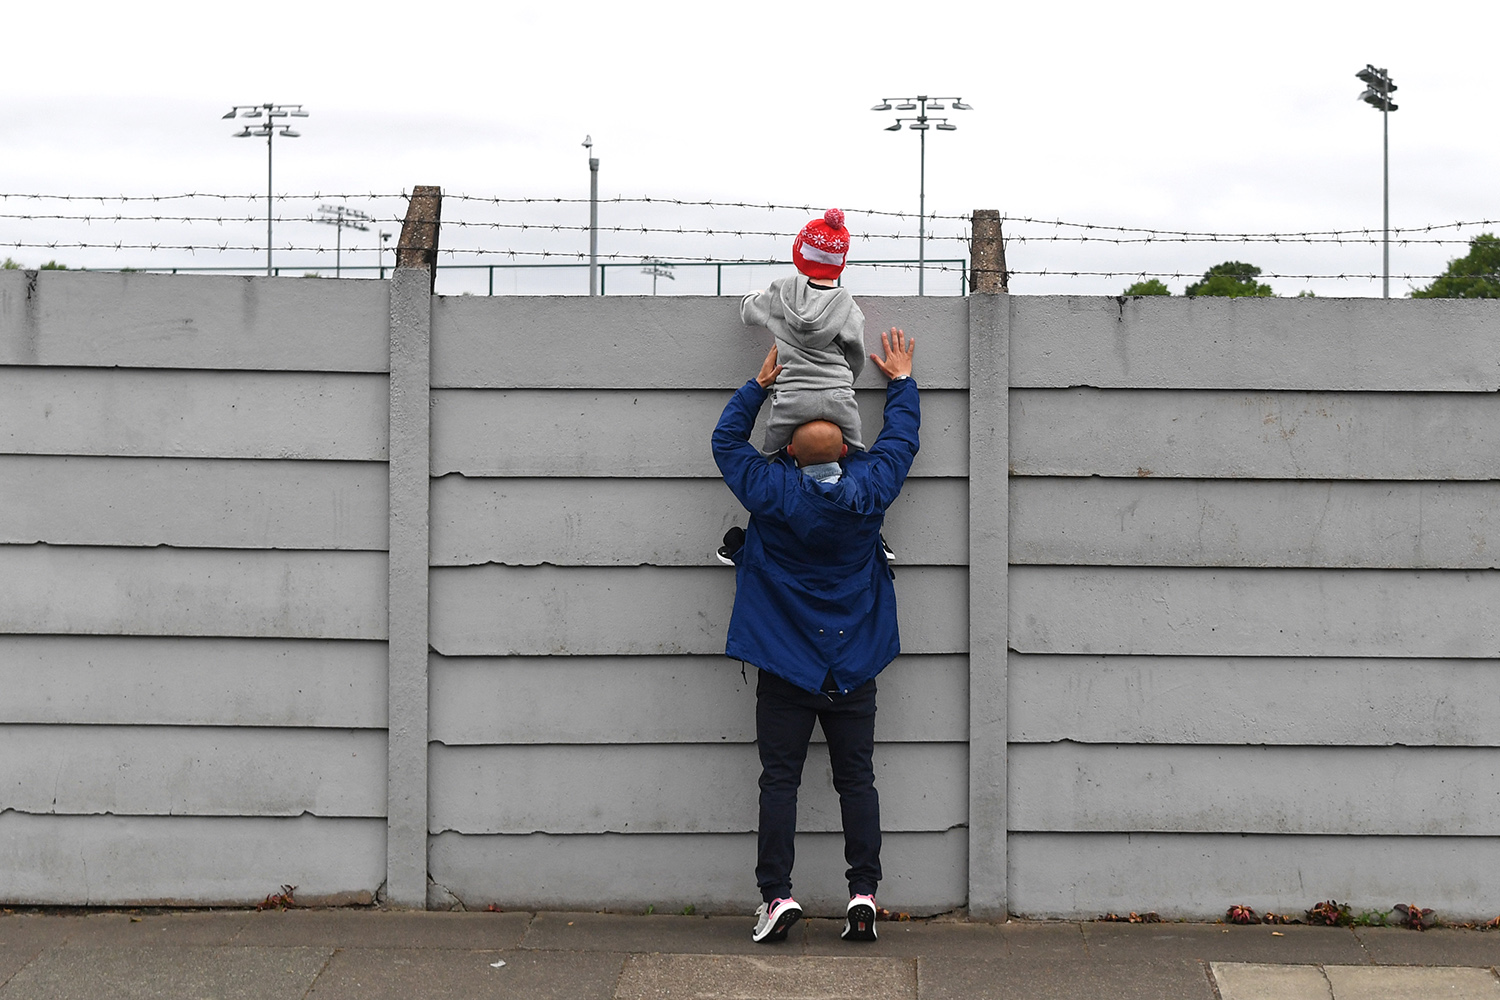 The perfect view. A father holds up his son so he can see over the fence at Melwood training ground, a playing field for the Liverpool Football Club, as players resume training May 19 in Liverpool. PAUL ELLIS/AFP via Getty Images